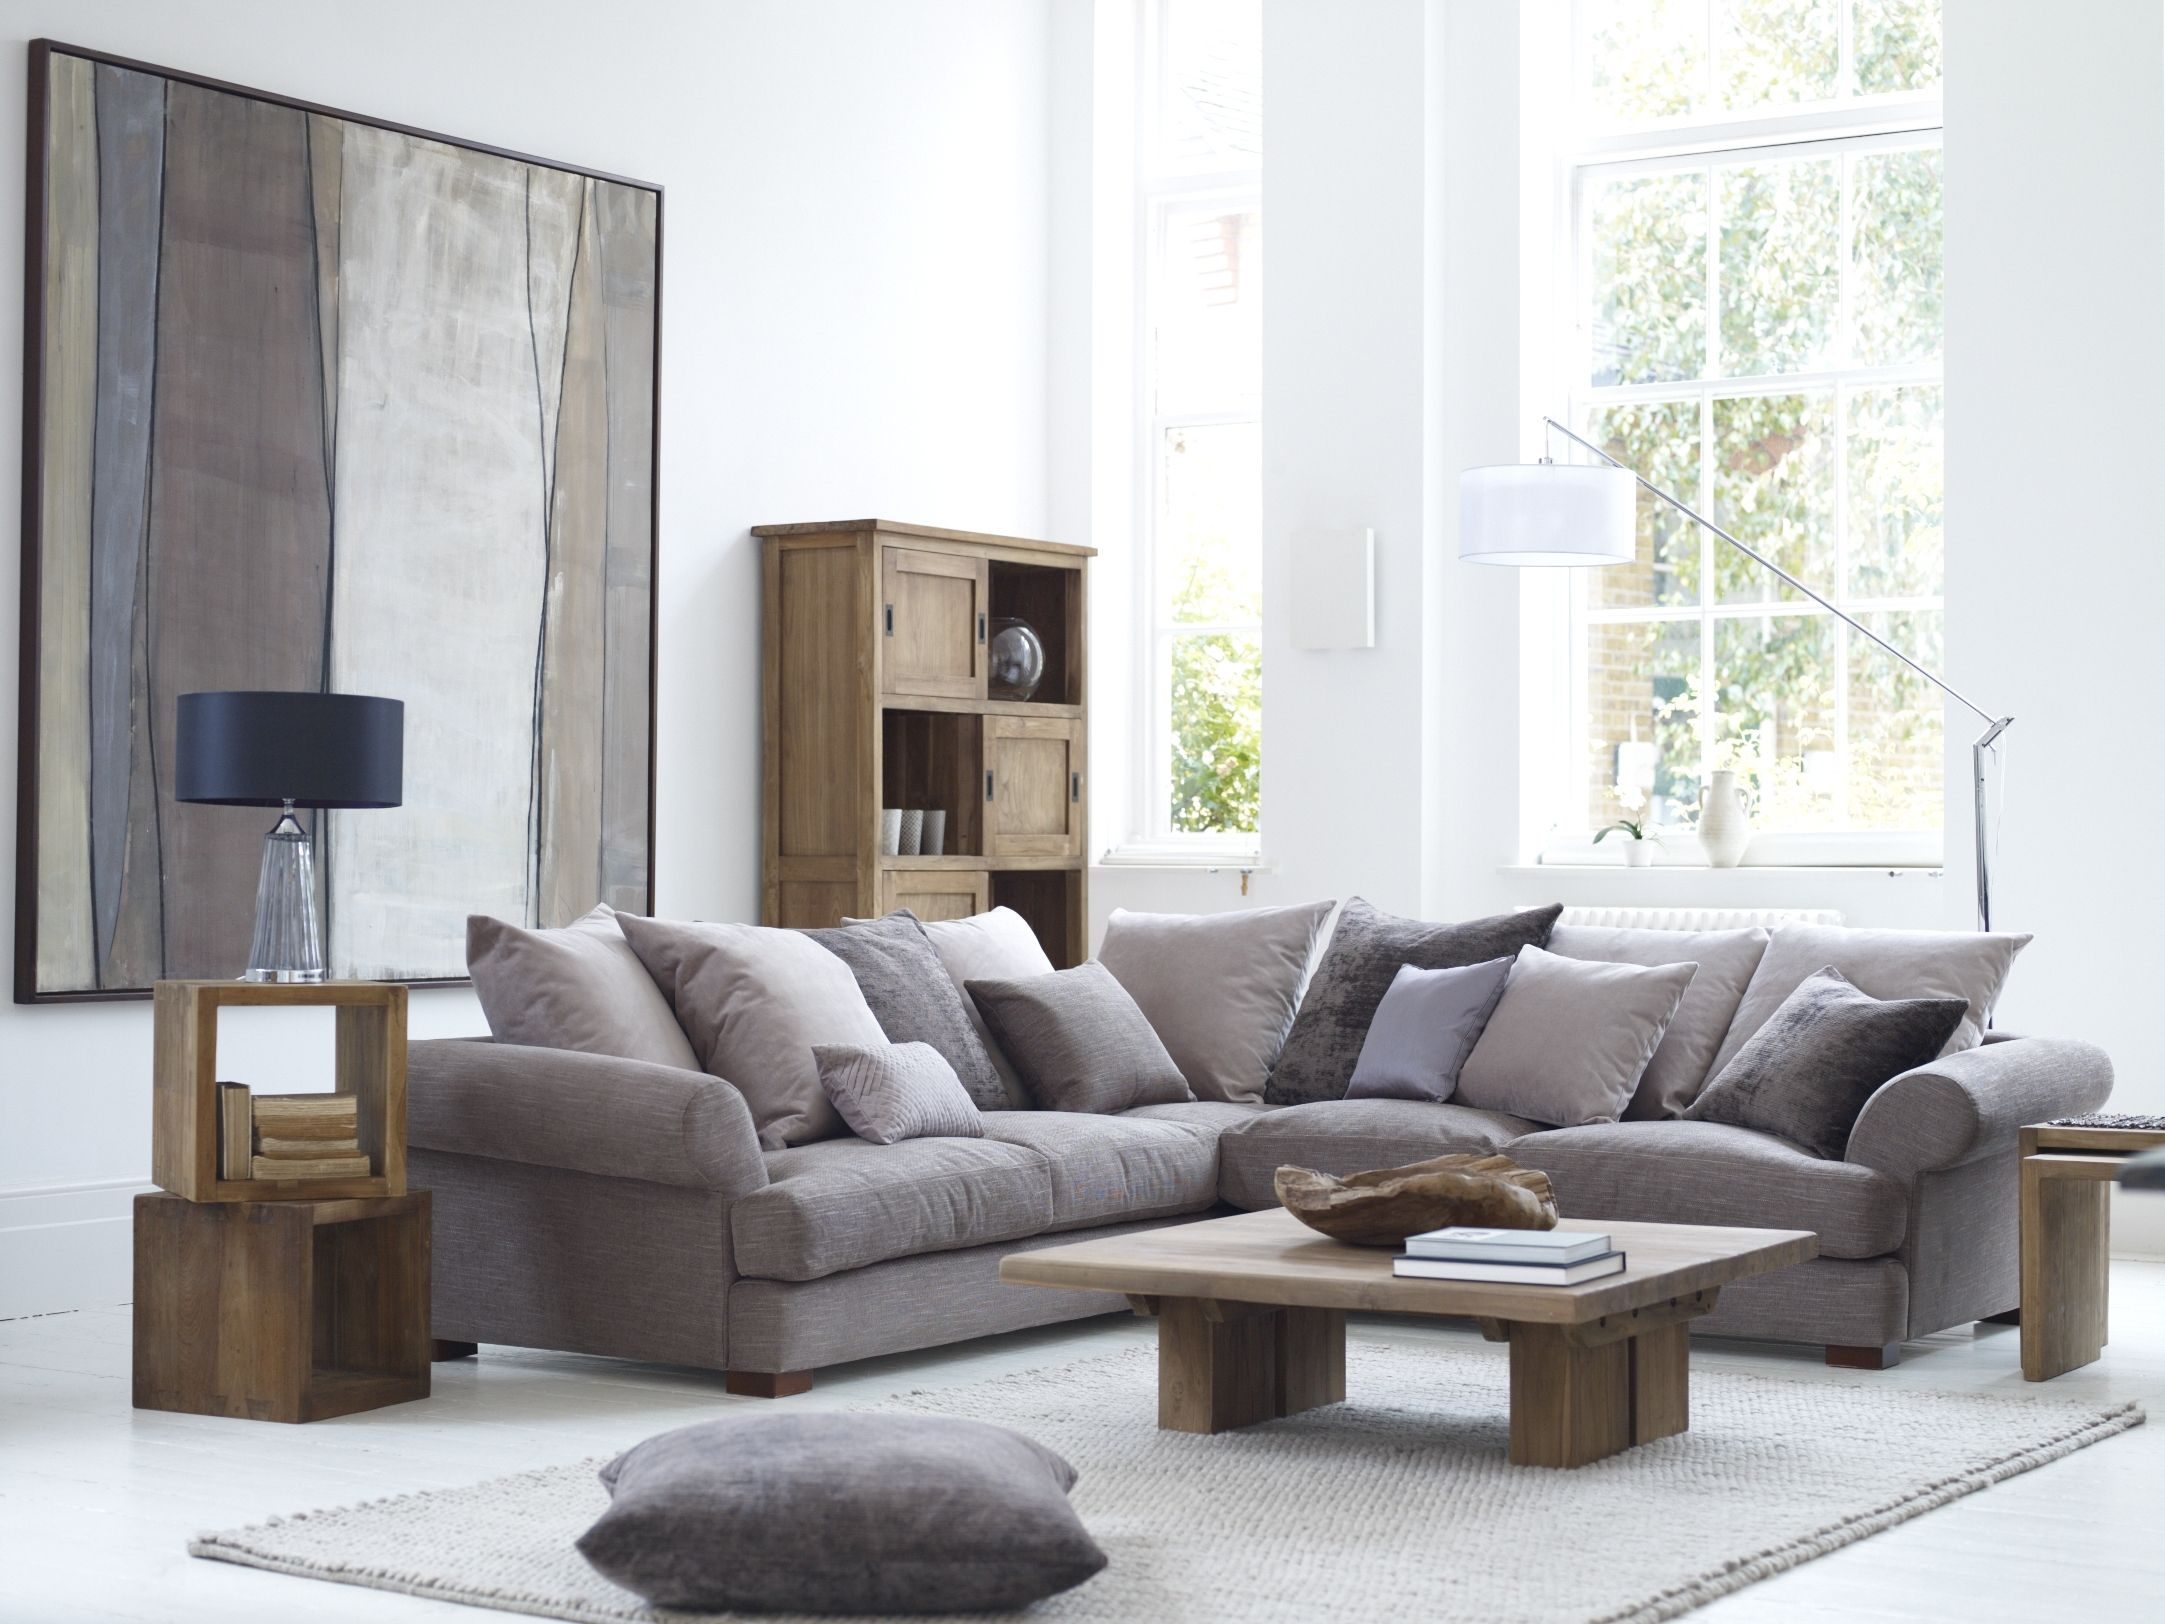 Raft Furniture Lincoln Corner Unit All Sofas Handmade In England Choose Your Style Size And Fabric